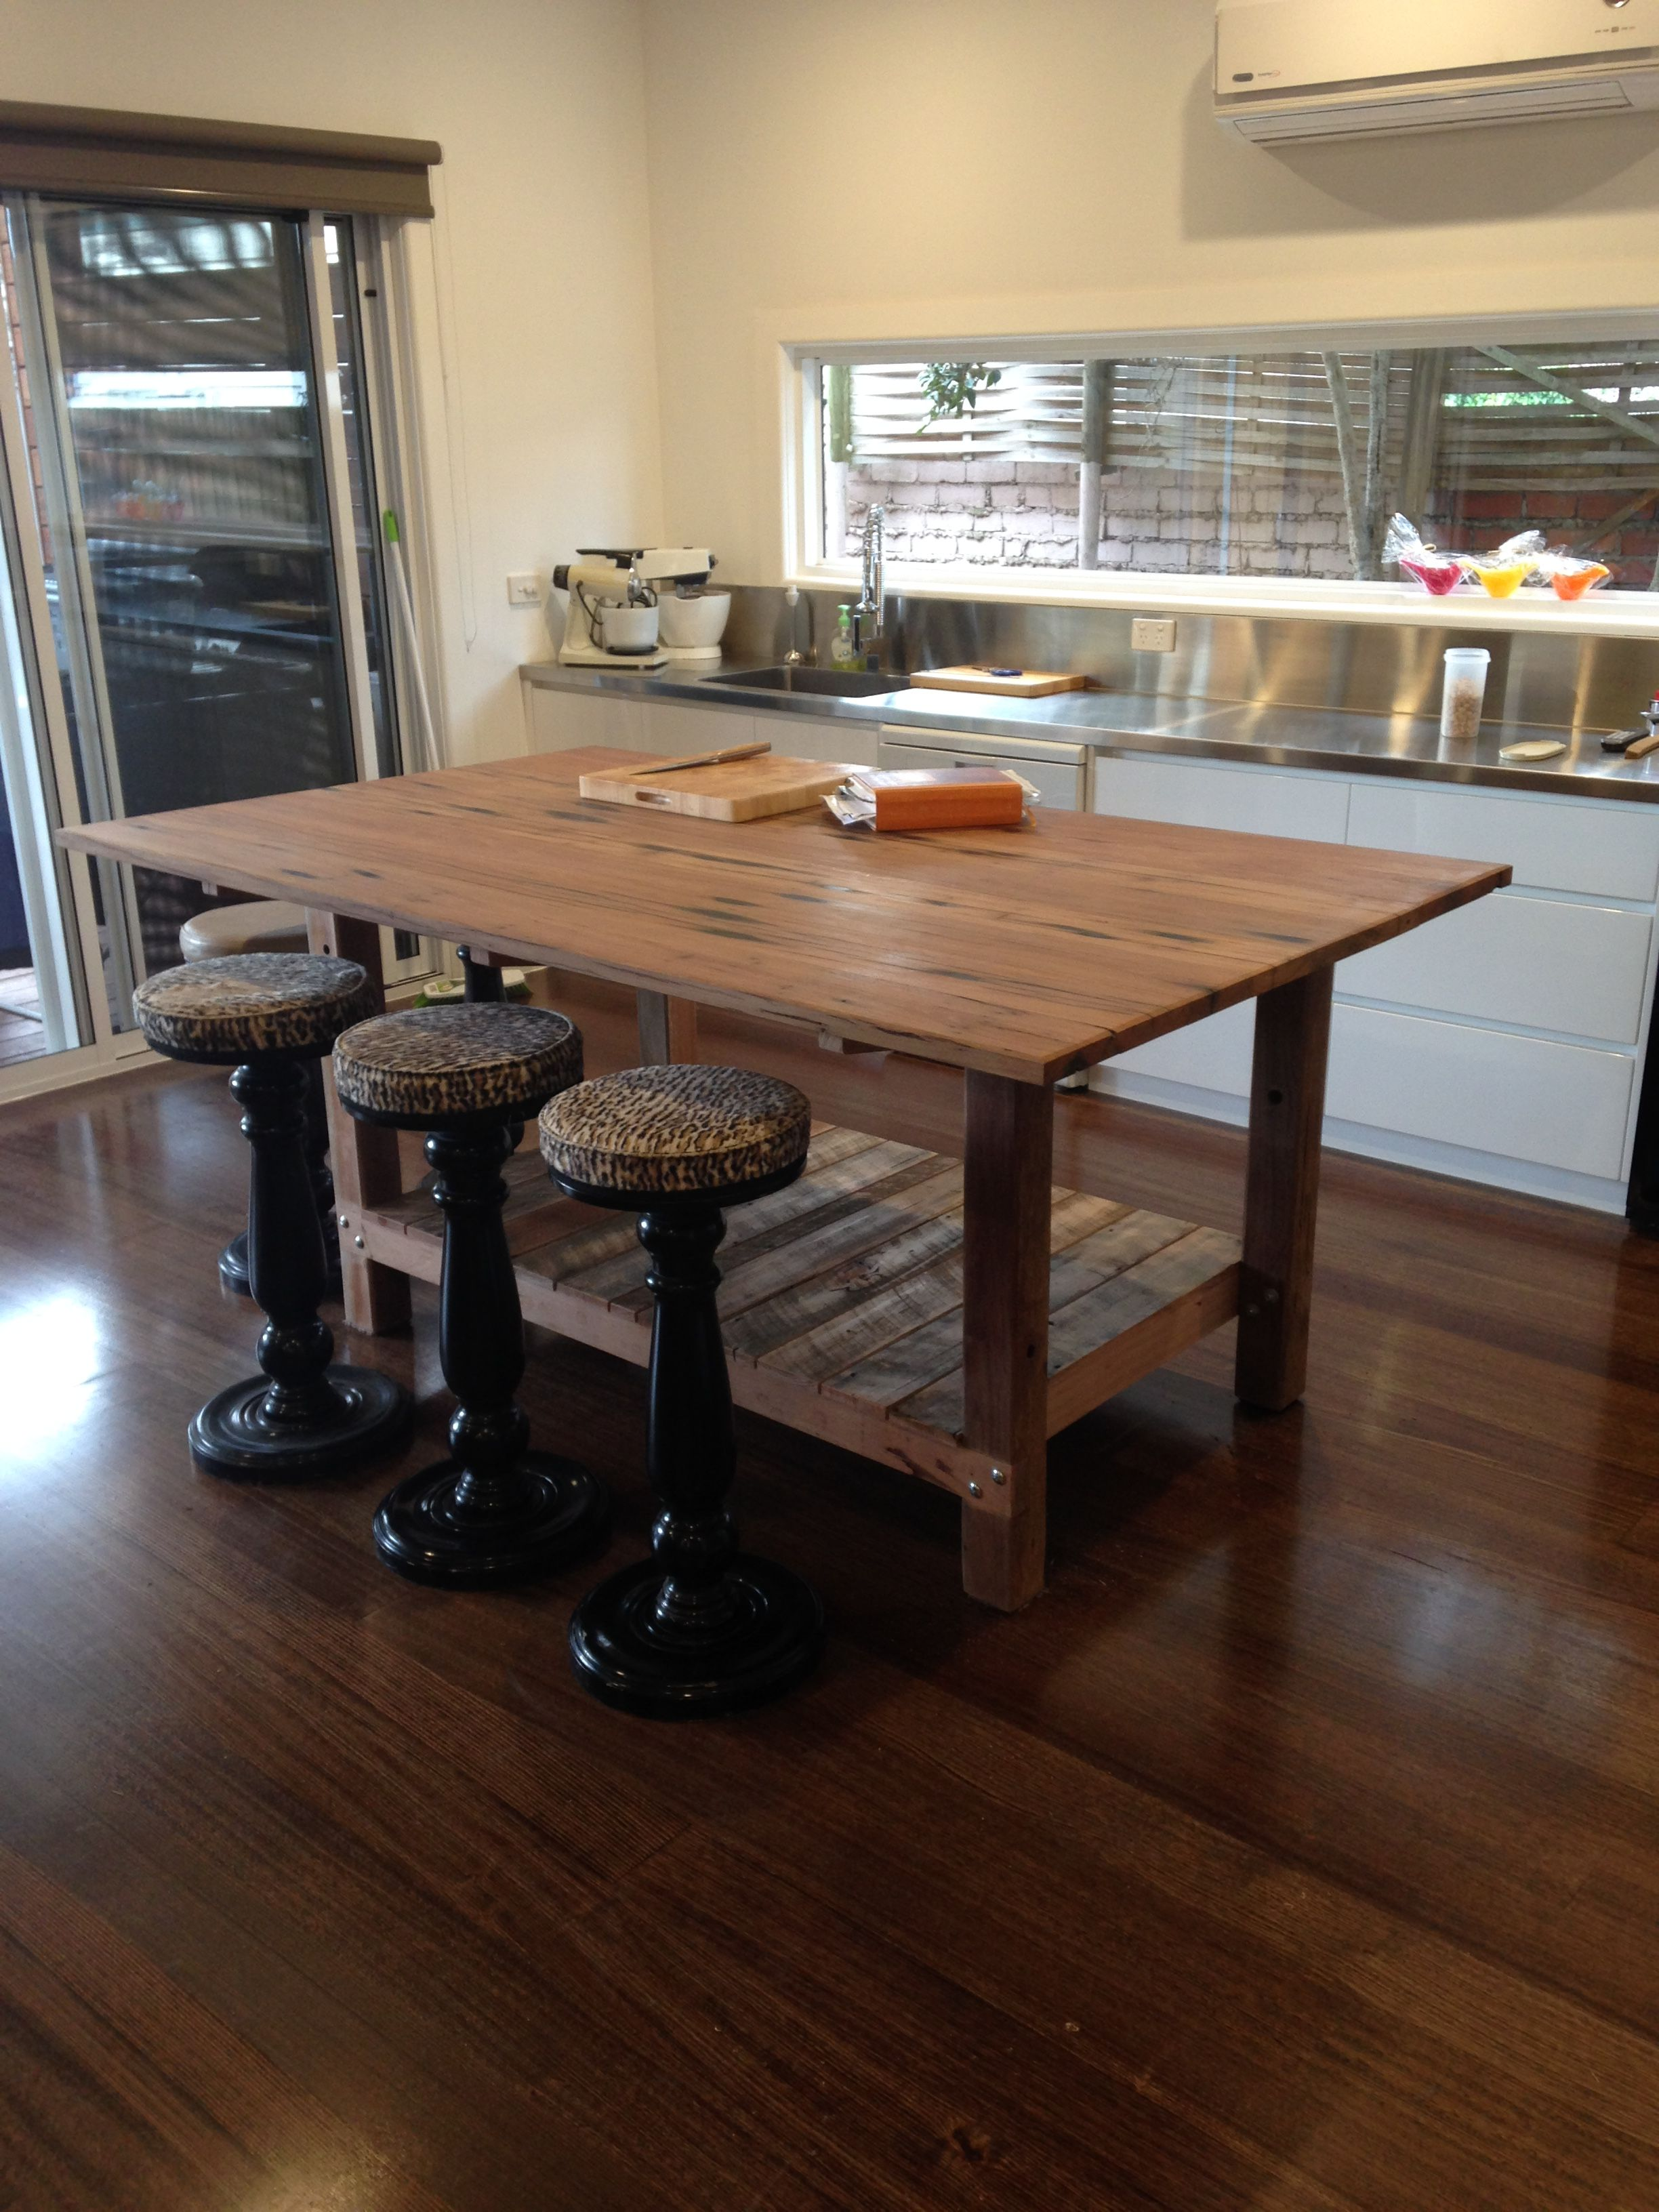 kitchen island bench 2000 x 1200 x 900 the top and posts